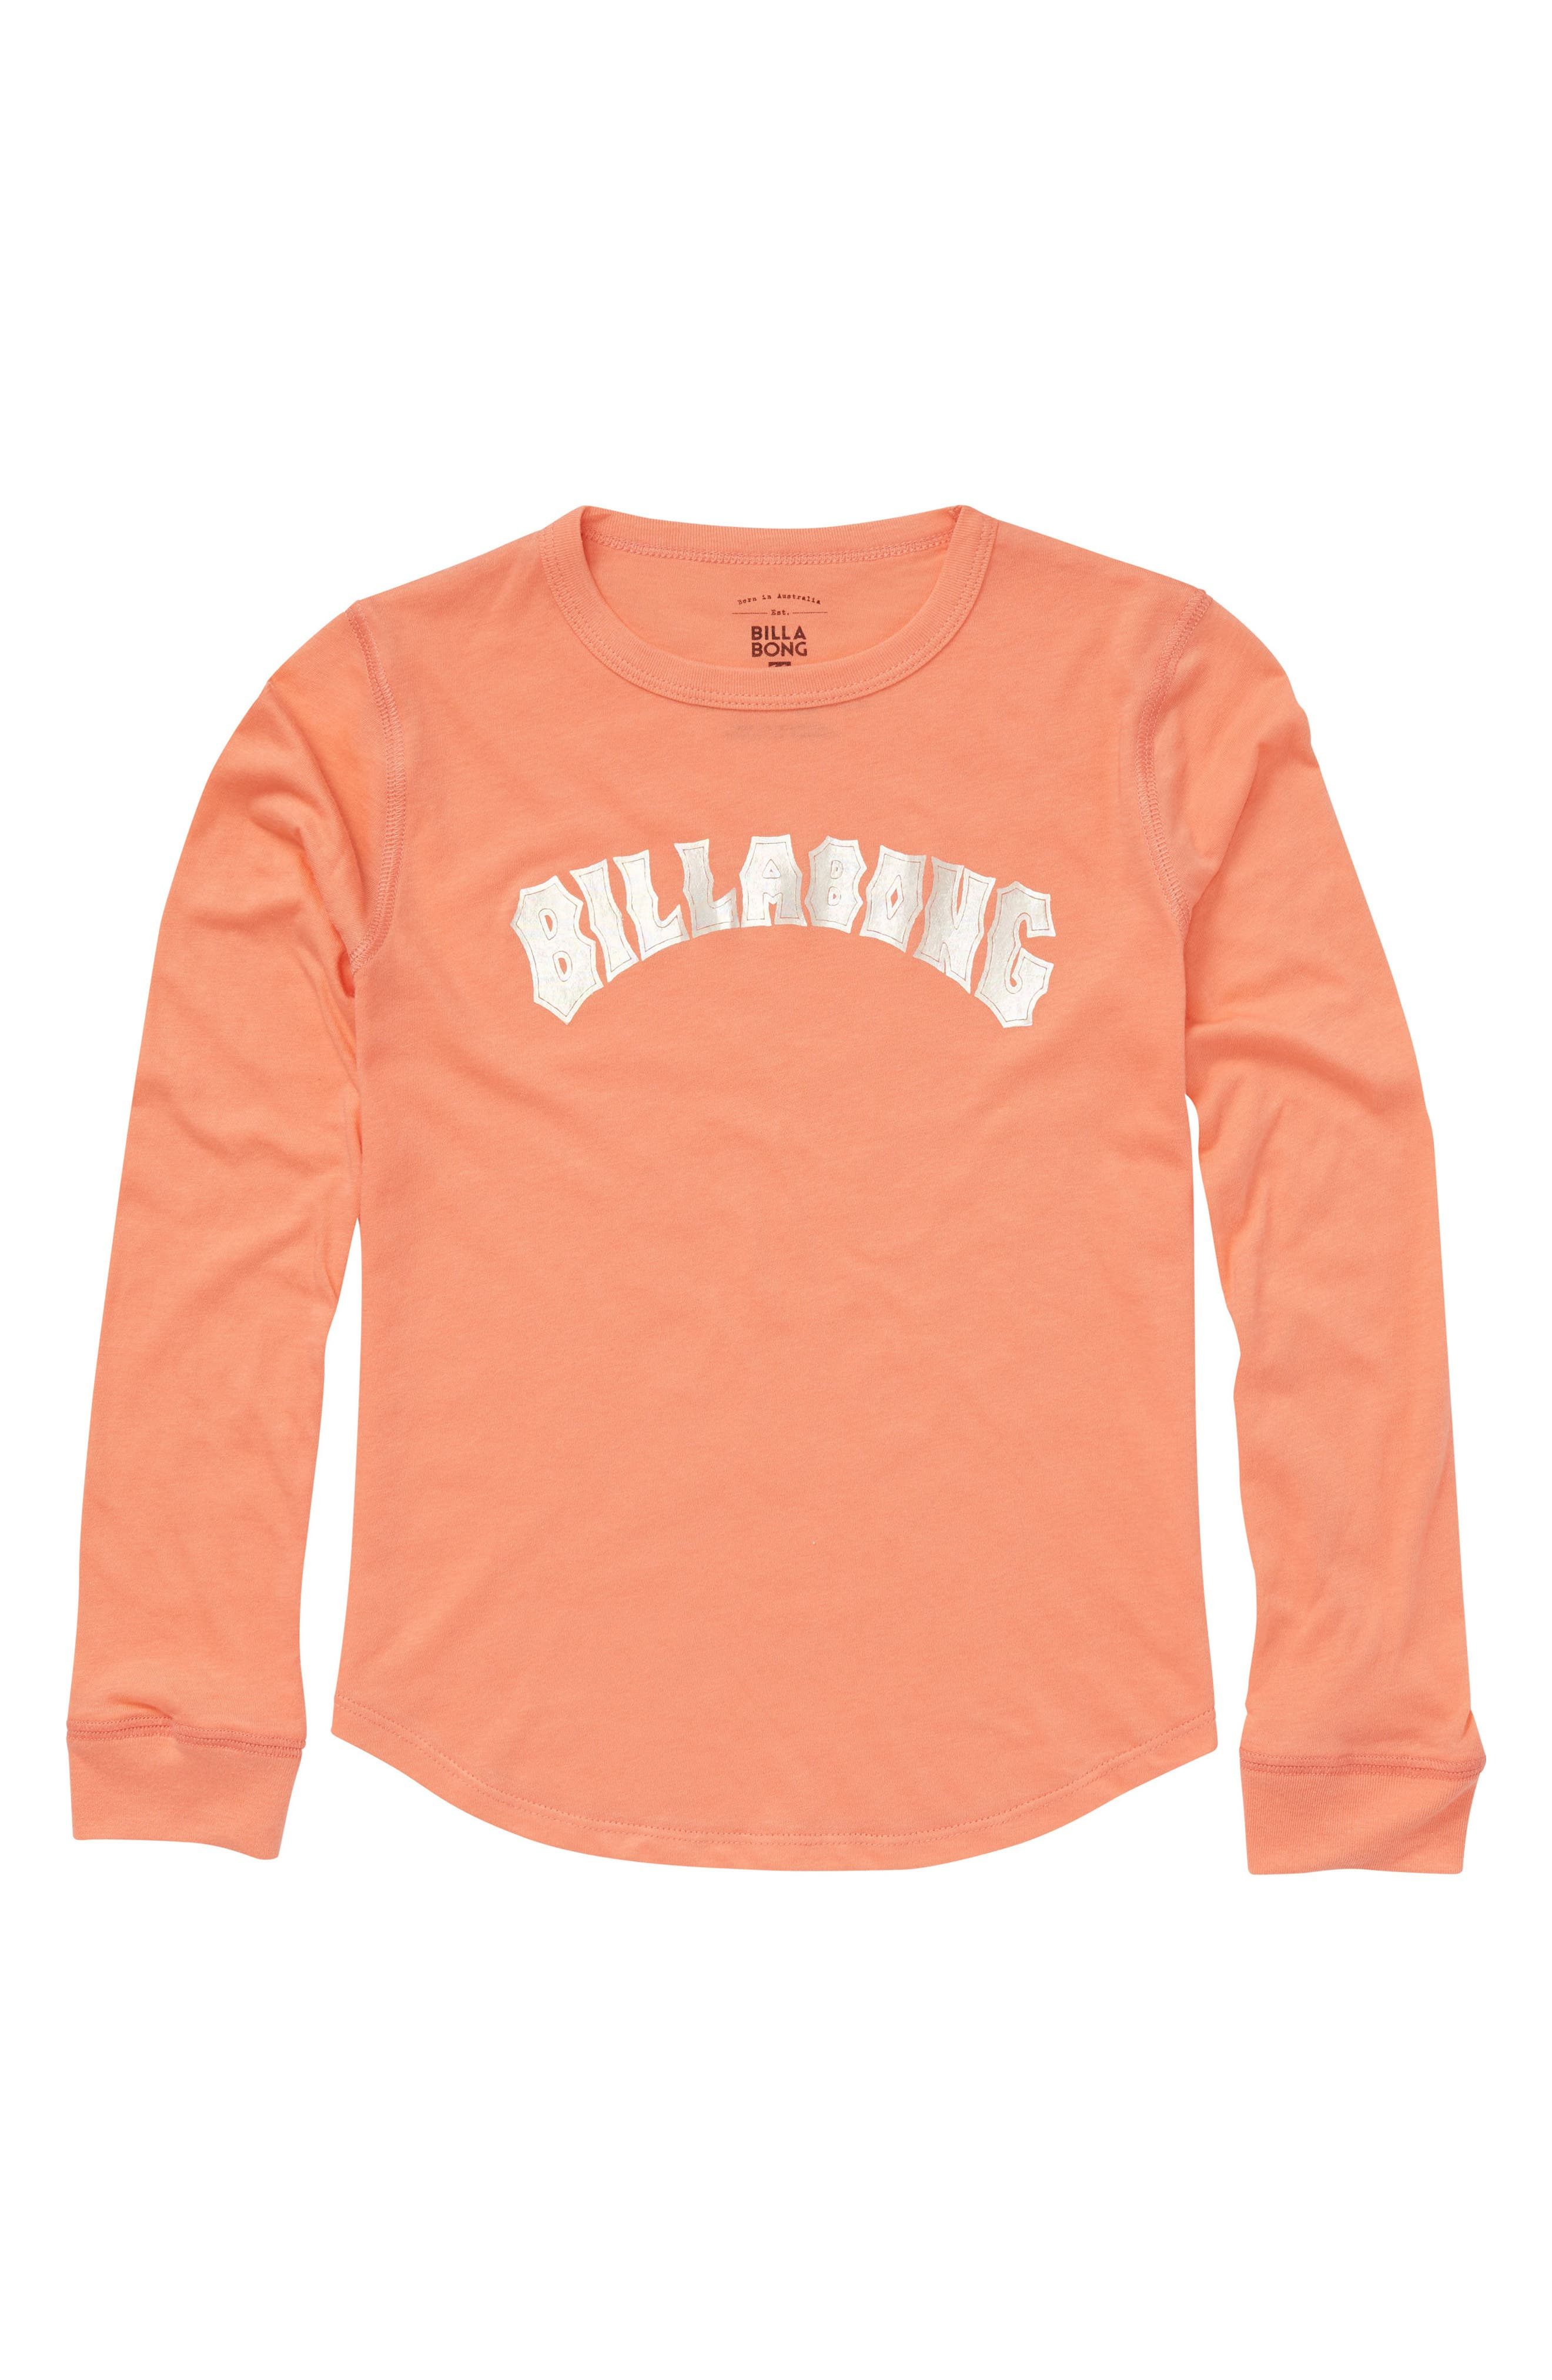 Heritage Logo Tee,                             Main thumbnail 1, color,                             Sunkissed Coral